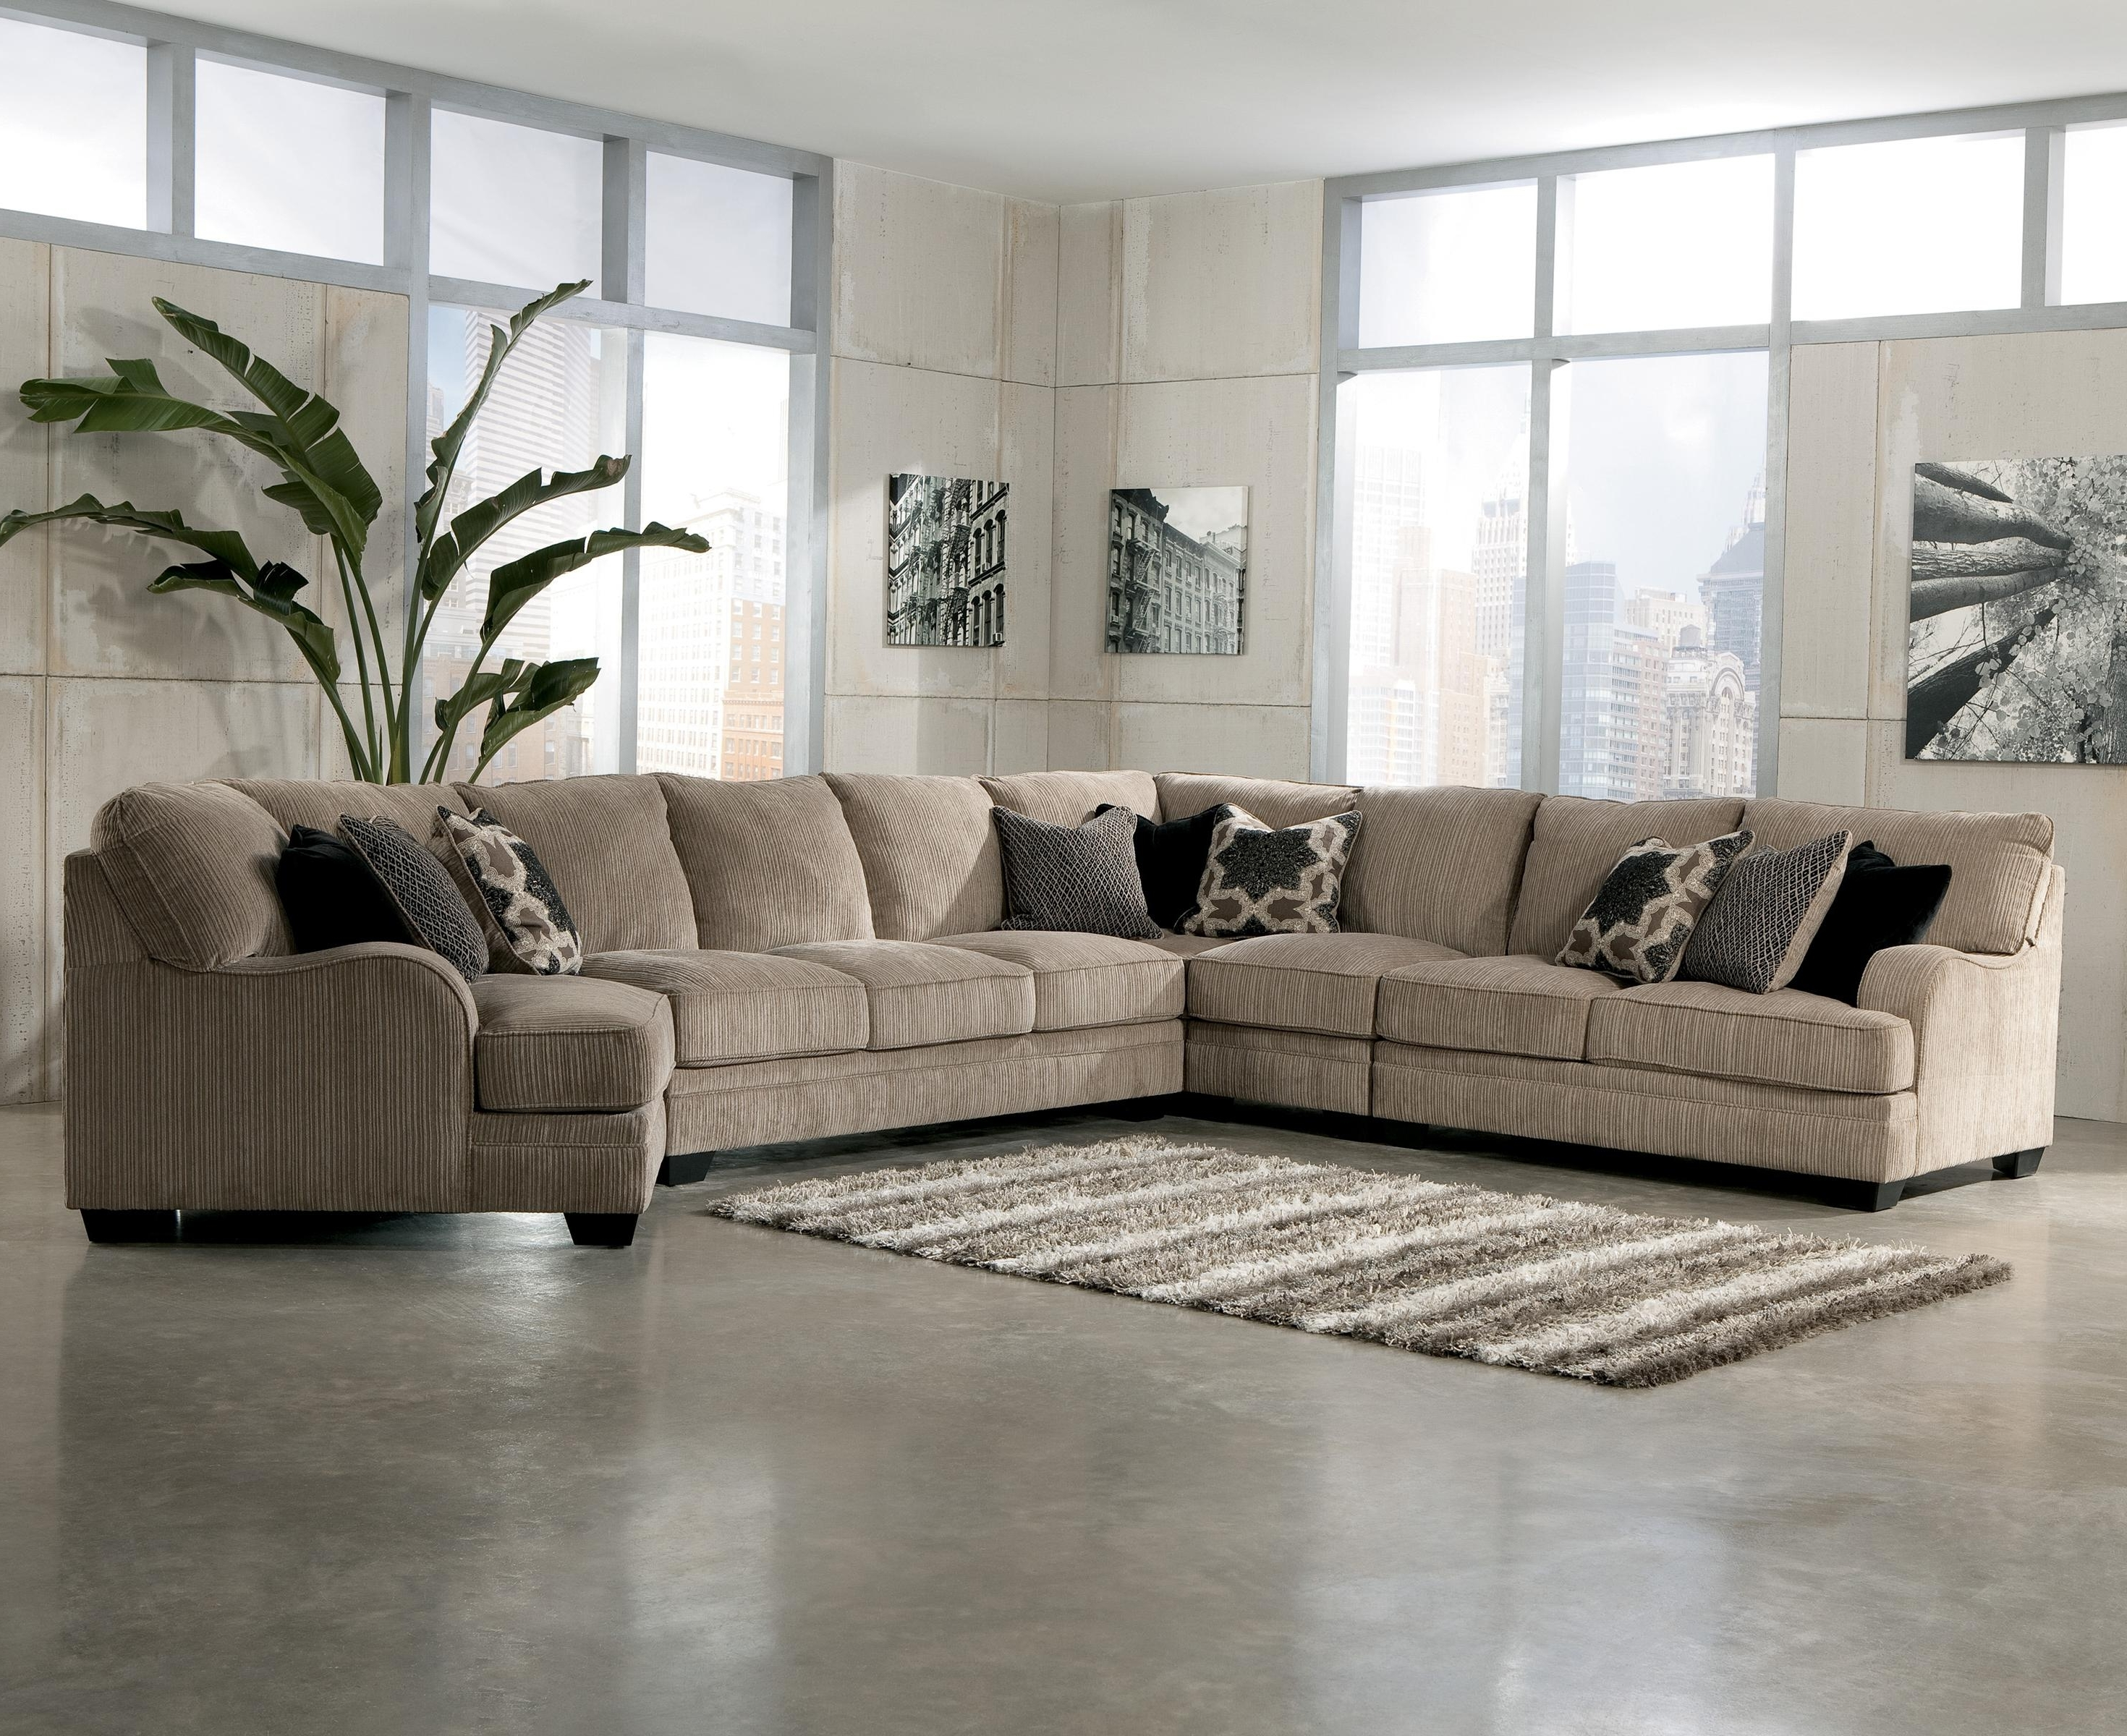 Signature Designashley Katisha – Platinum 5 Piece Sectional Inside 2017 Sectional Sofas With Cuddler (View 12 of 15)